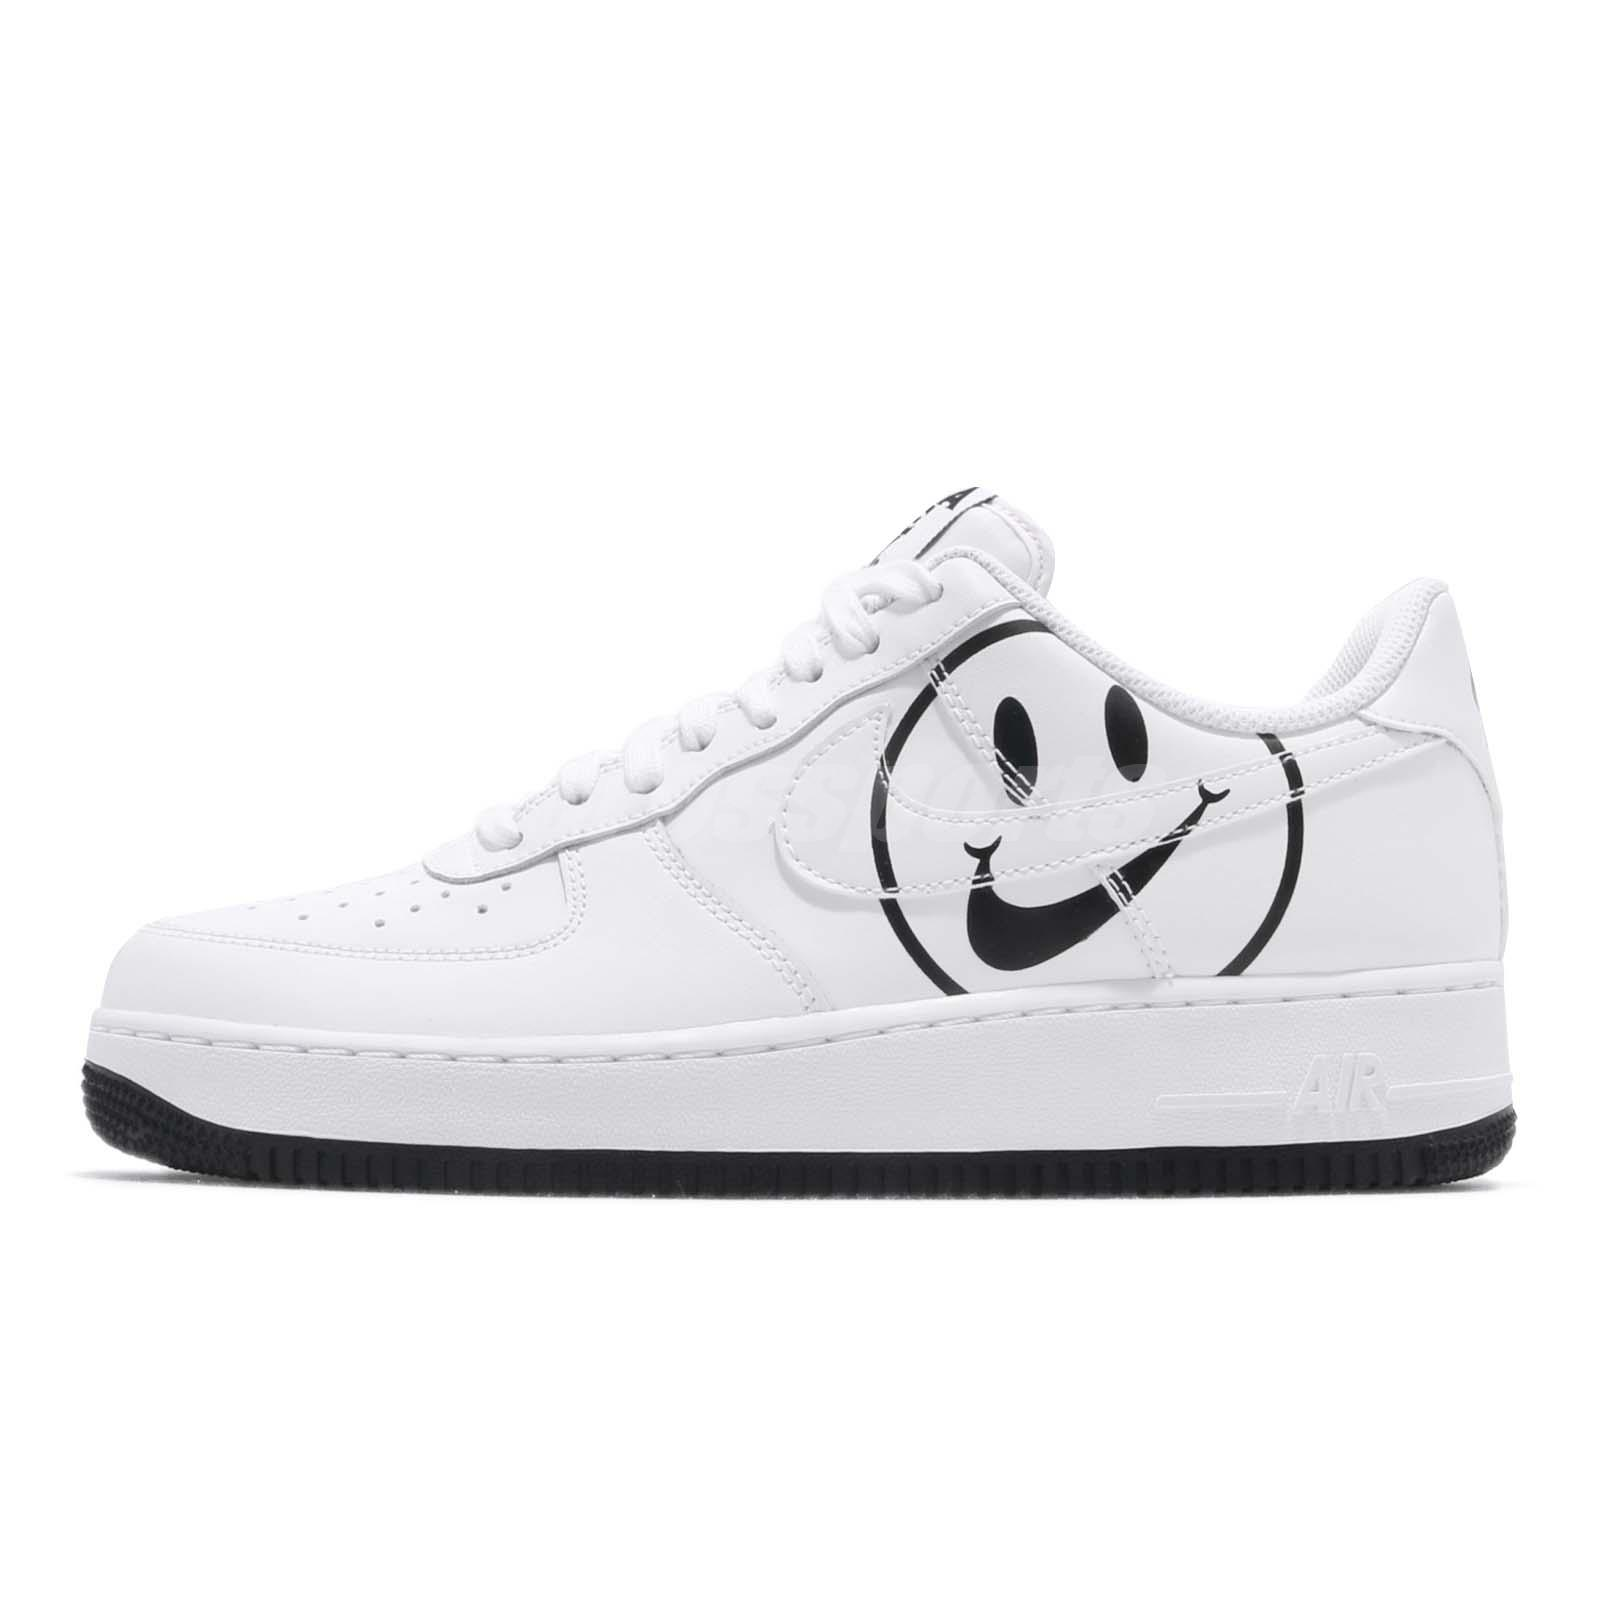 f4a92ca36cb7 Nike Air Force 1 07 LV8 ND AF1 Have A Nike Day White Black Men Shoes  BQ9044-100